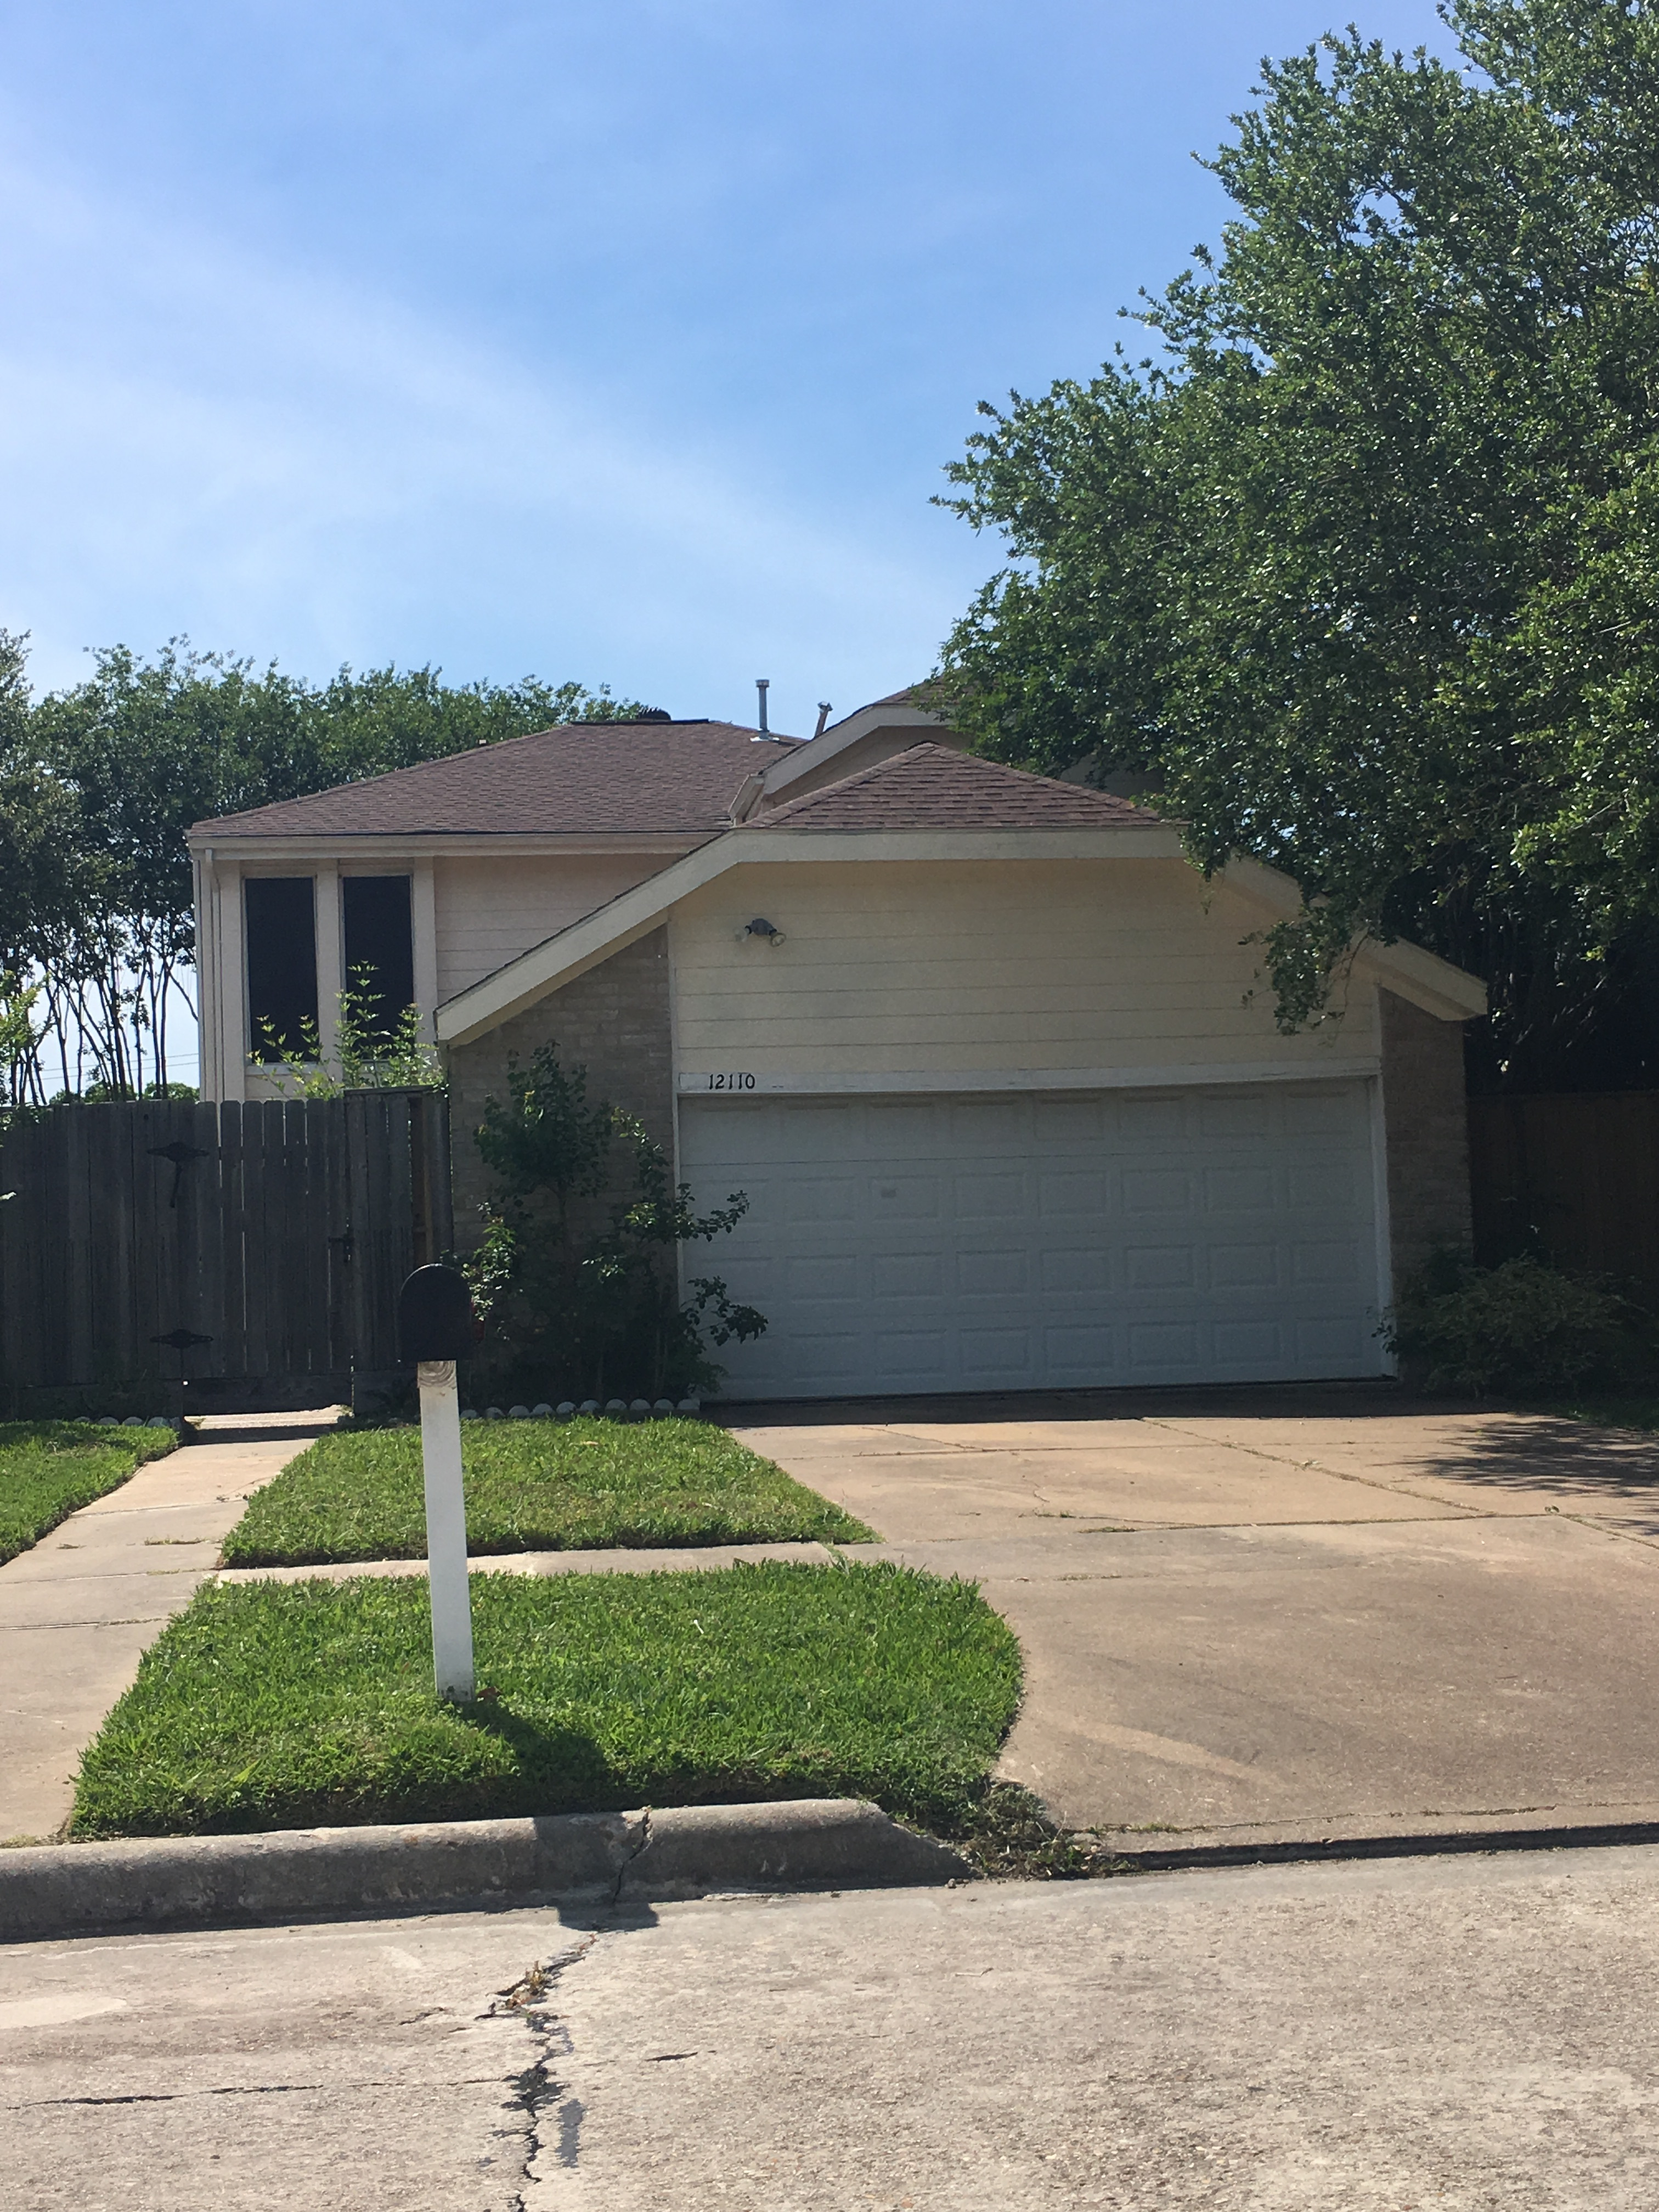 Photo of 12110 Meadow Valley Ln, Meadows Place, TX, 77477